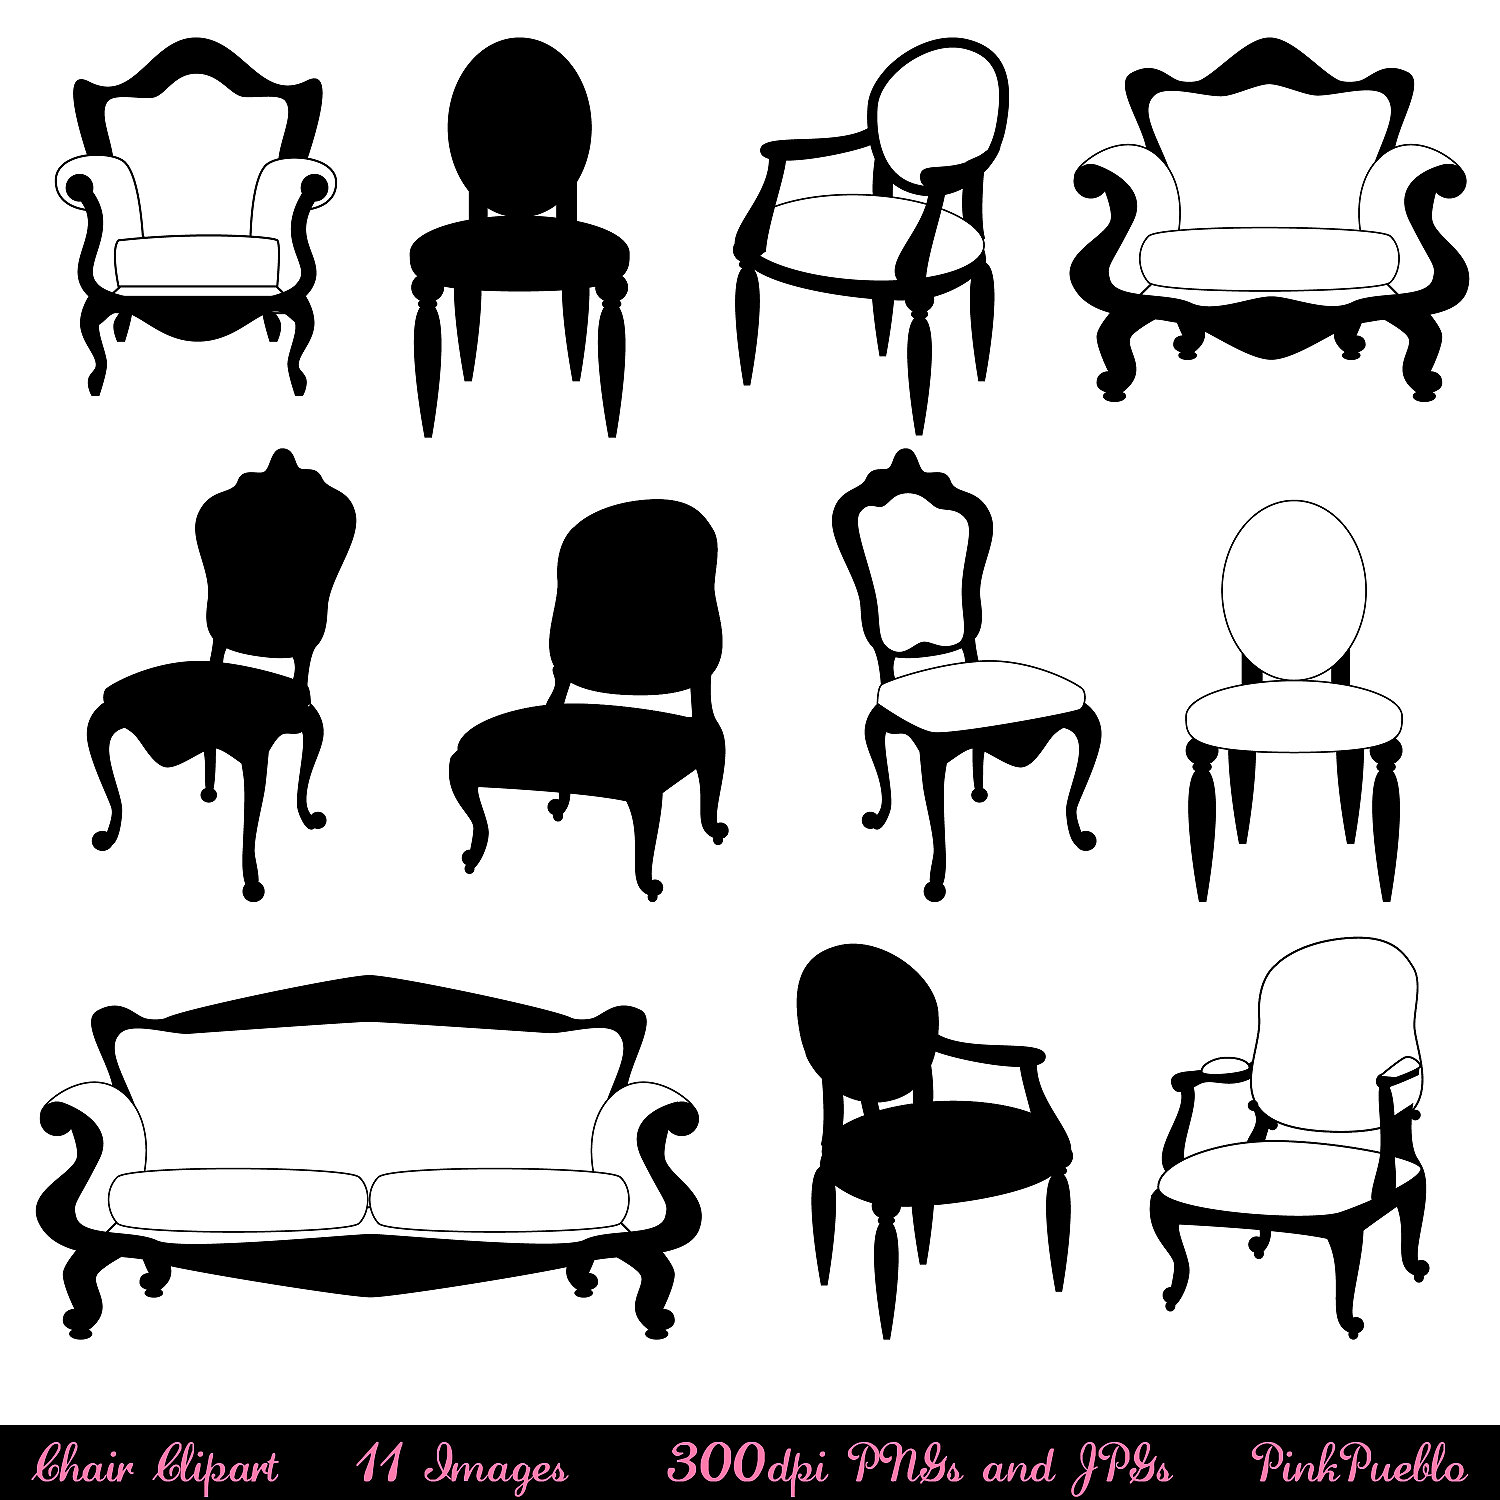 chair clipart black and white | clipart panda - free clipart images